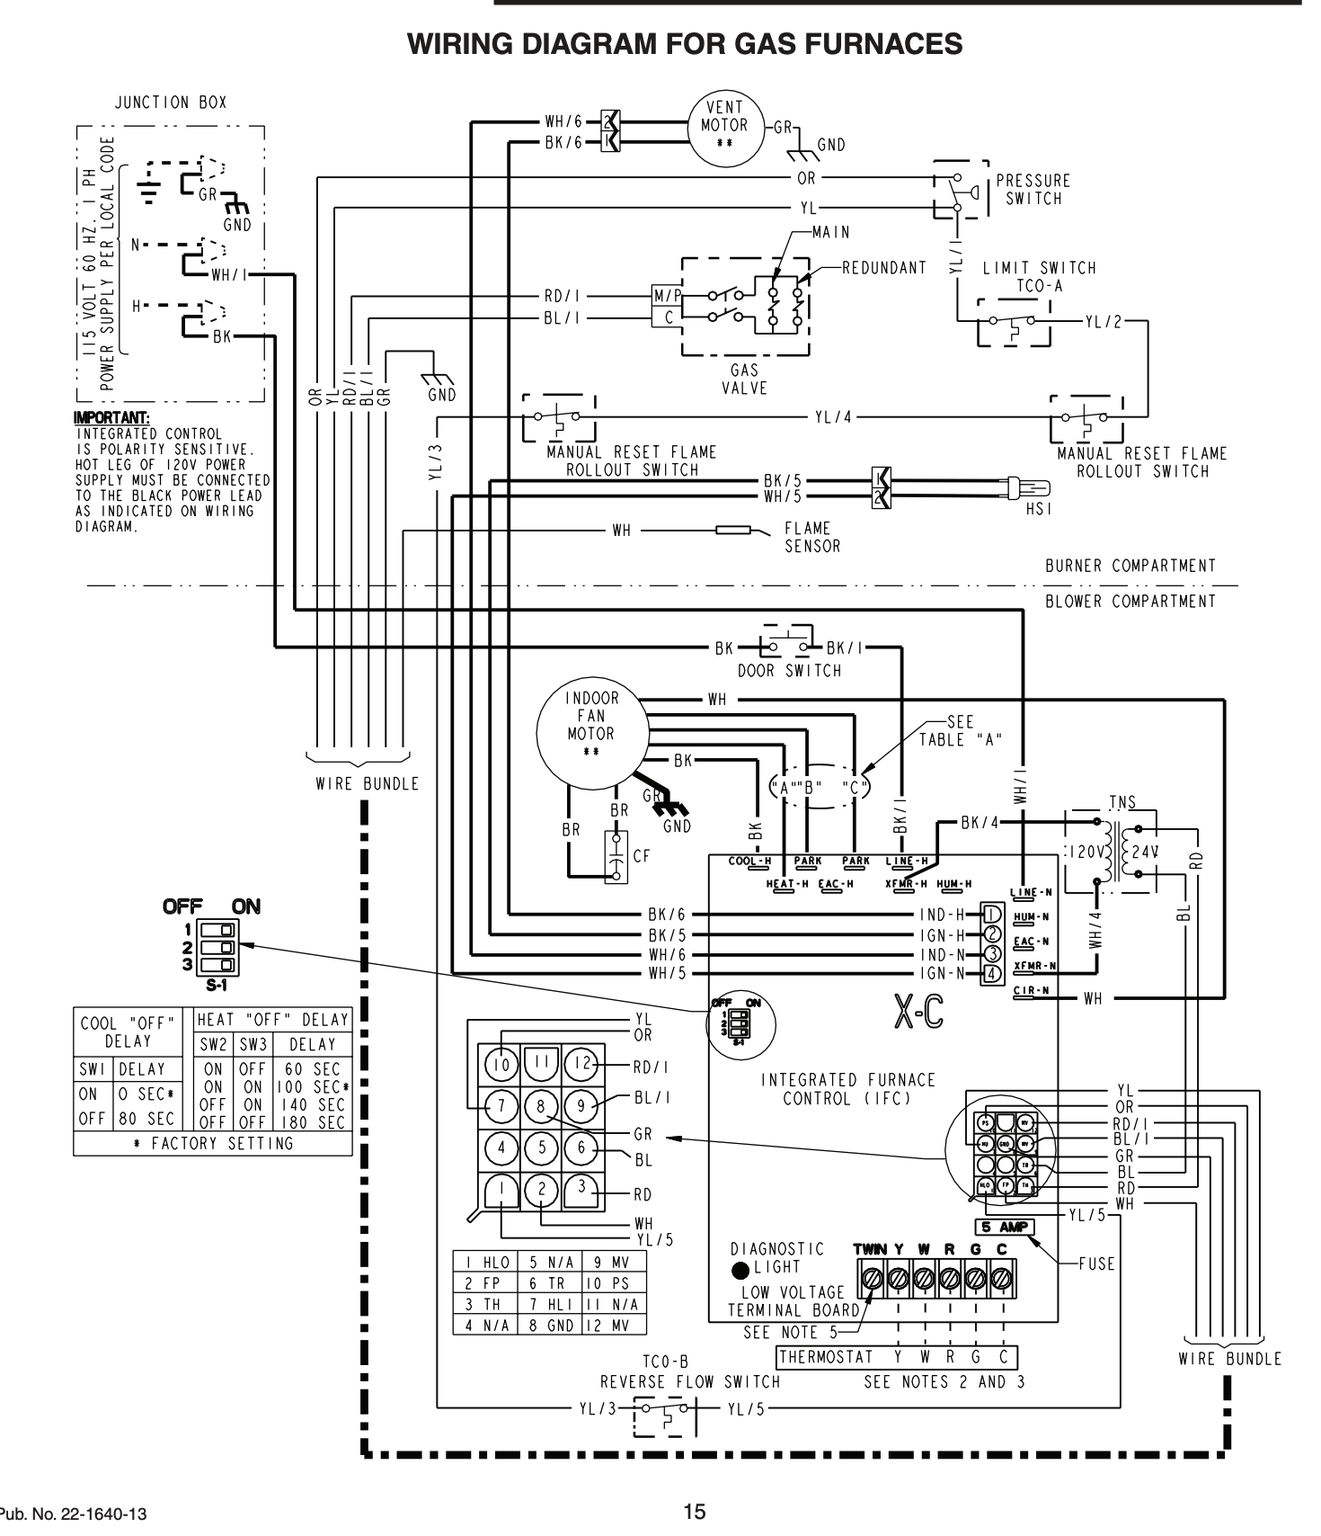 hight resolution of furnace controls and wiring demands wiring diagram used fan limit switch q a 5 furnace fan